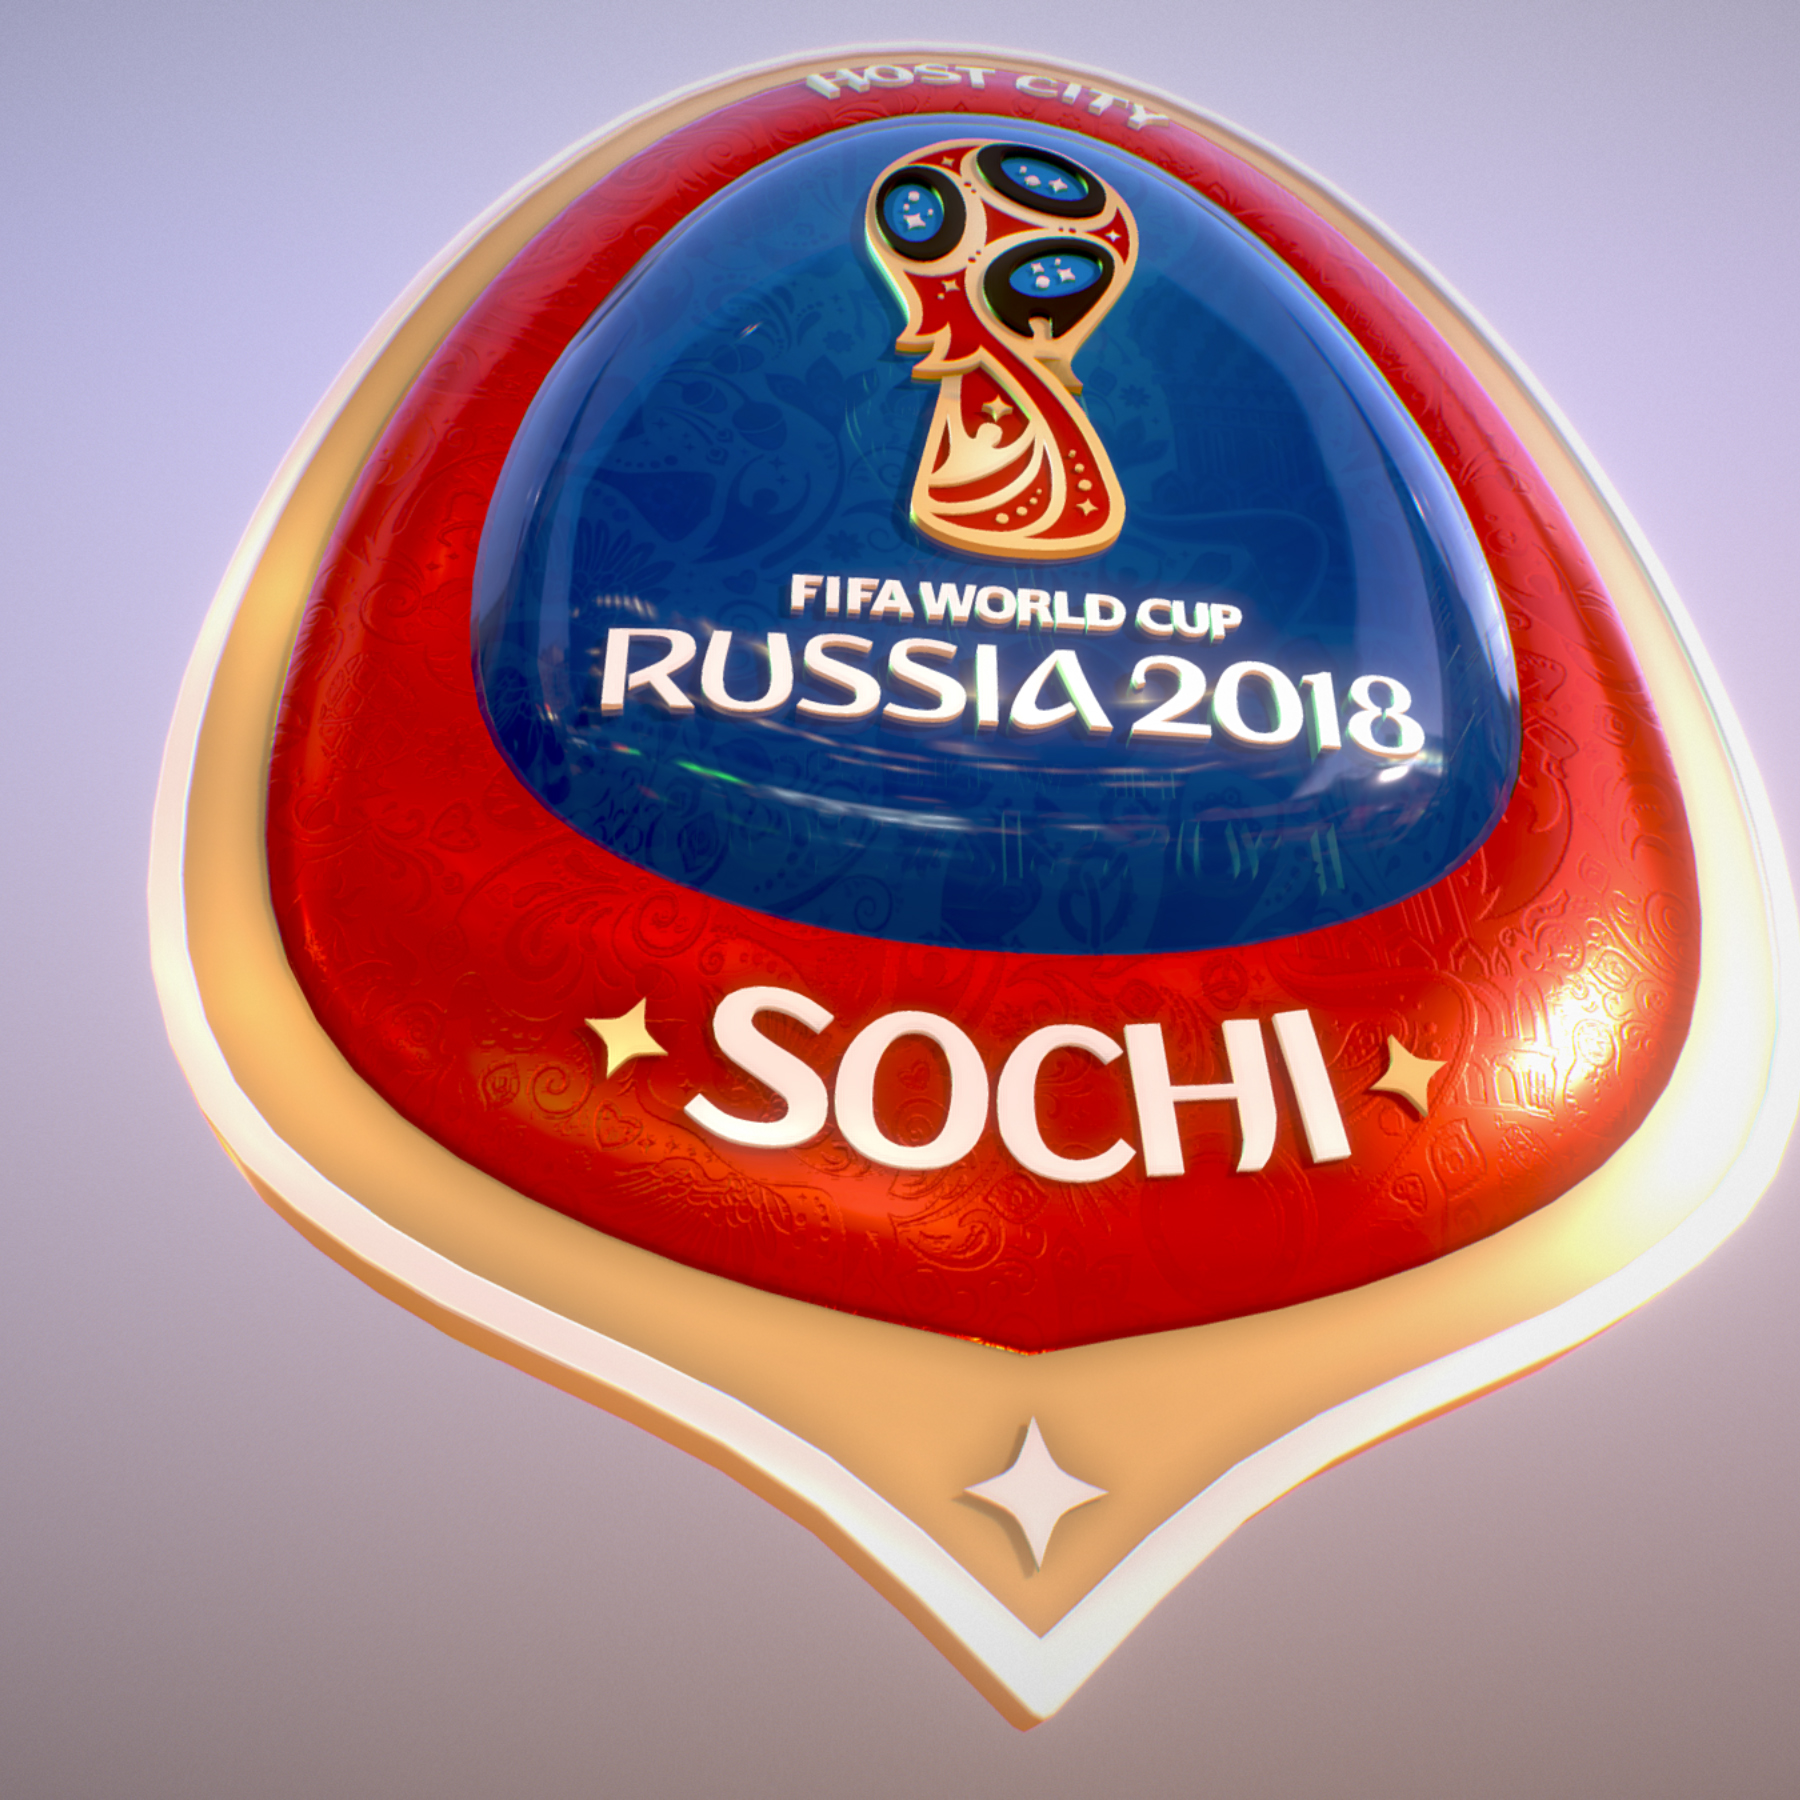 sochi host city world cup russia 2018 symbol 3d model max  fbx ma mb obj 271720